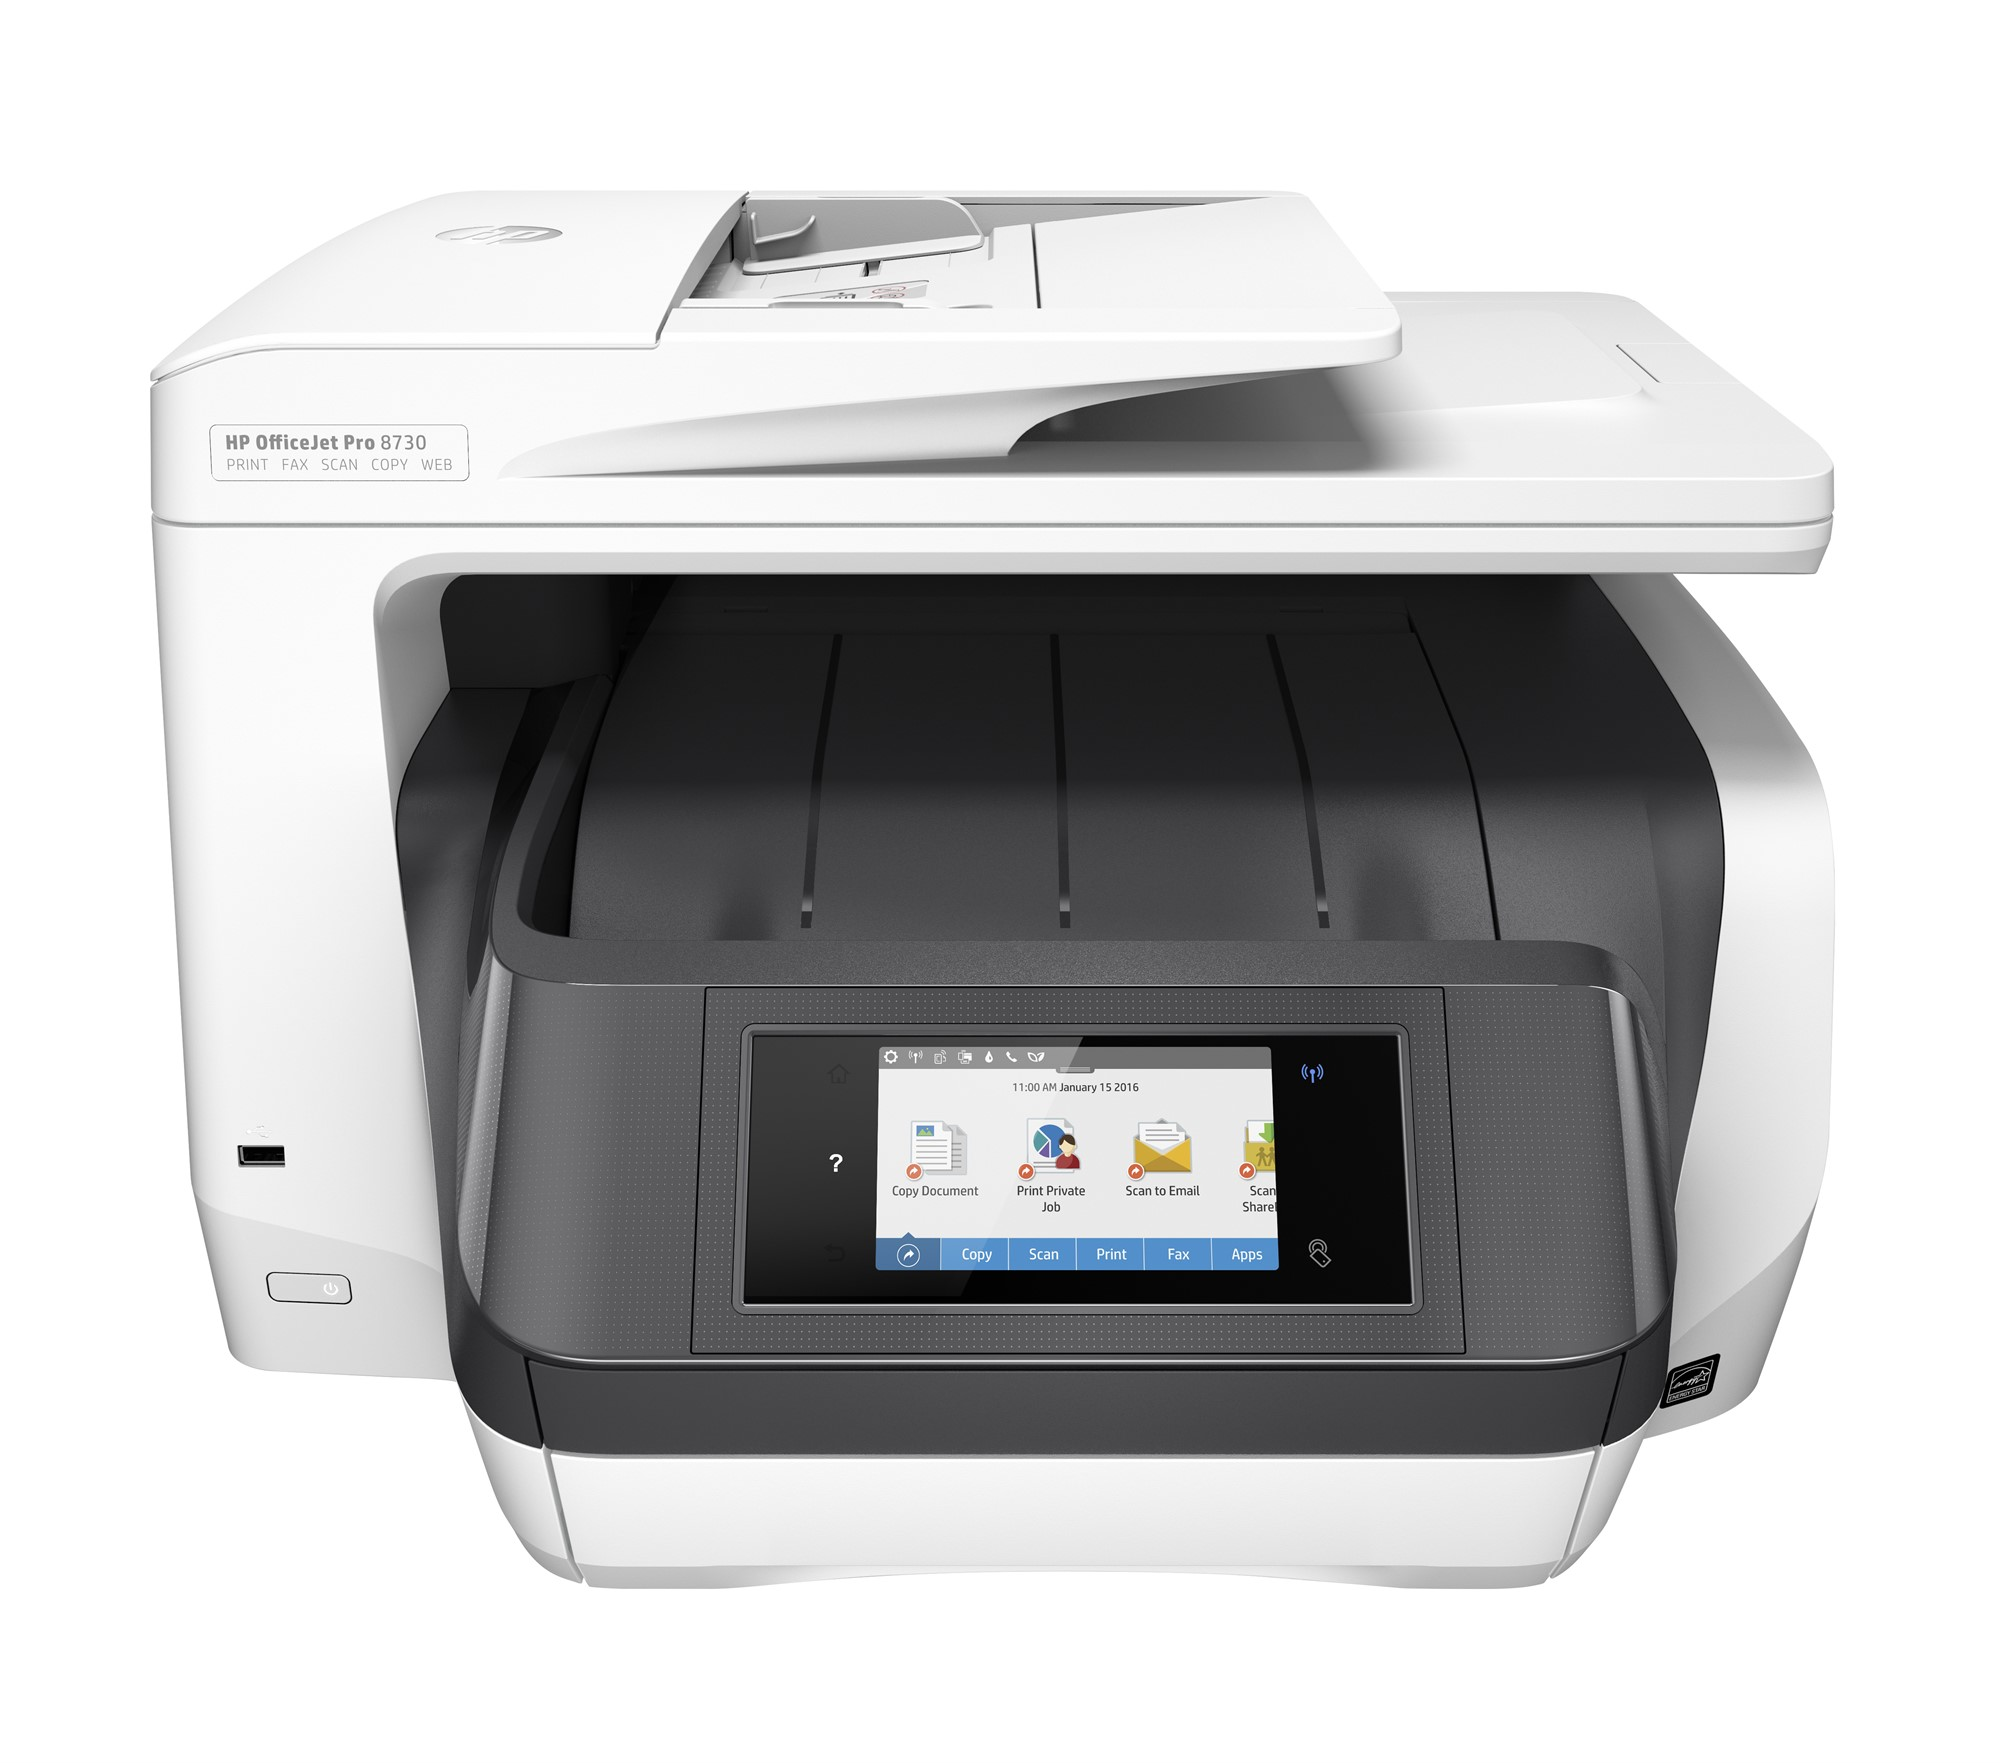 hp officejet pro pro 8730 all in one printer 0 in distributor wholesale stock for resellers to. Black Bedroom Furniture Sets. Home Design Ideas